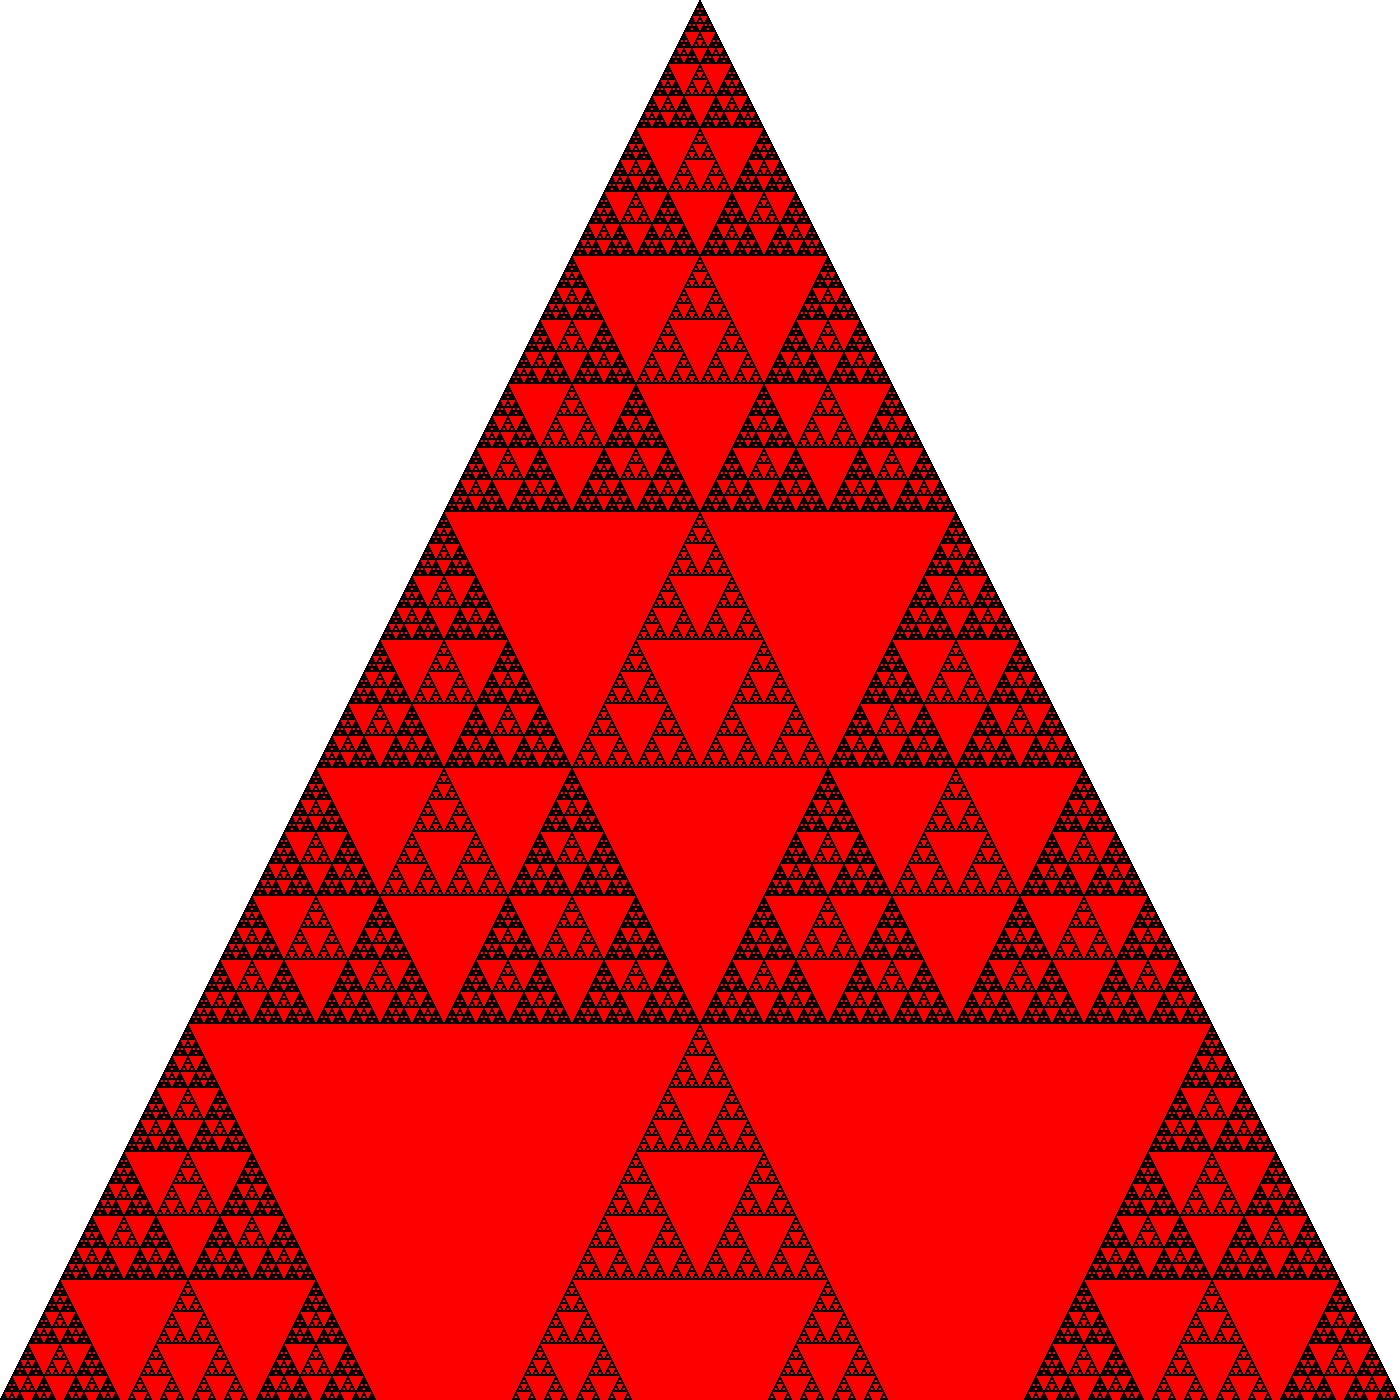 Pascal S Triangle With Multiples Of 4 In Red